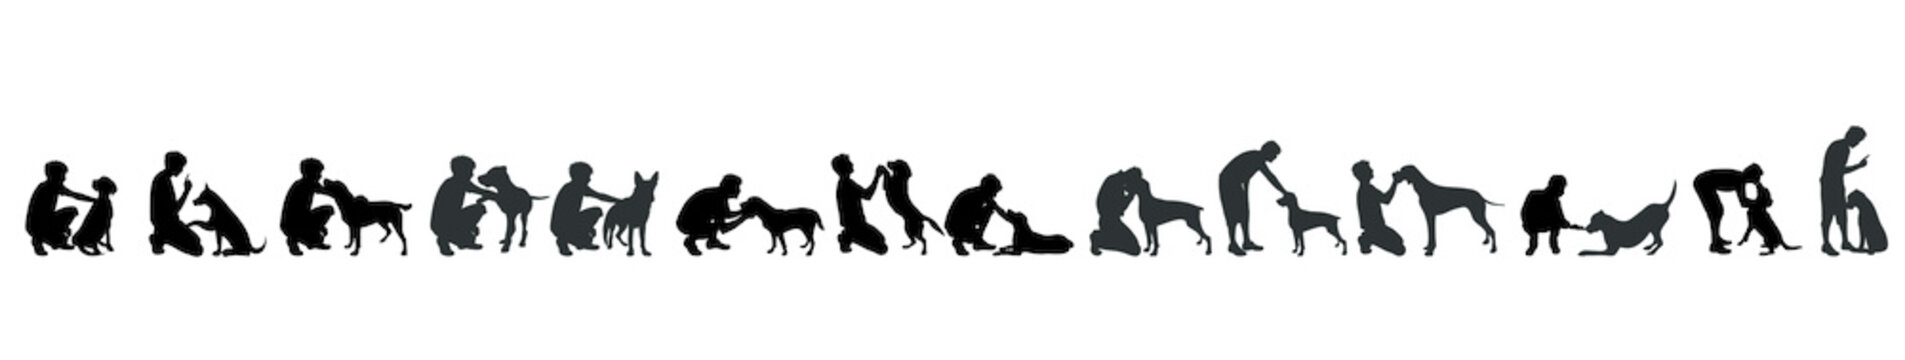 Vector silhouette of man with dog white background.